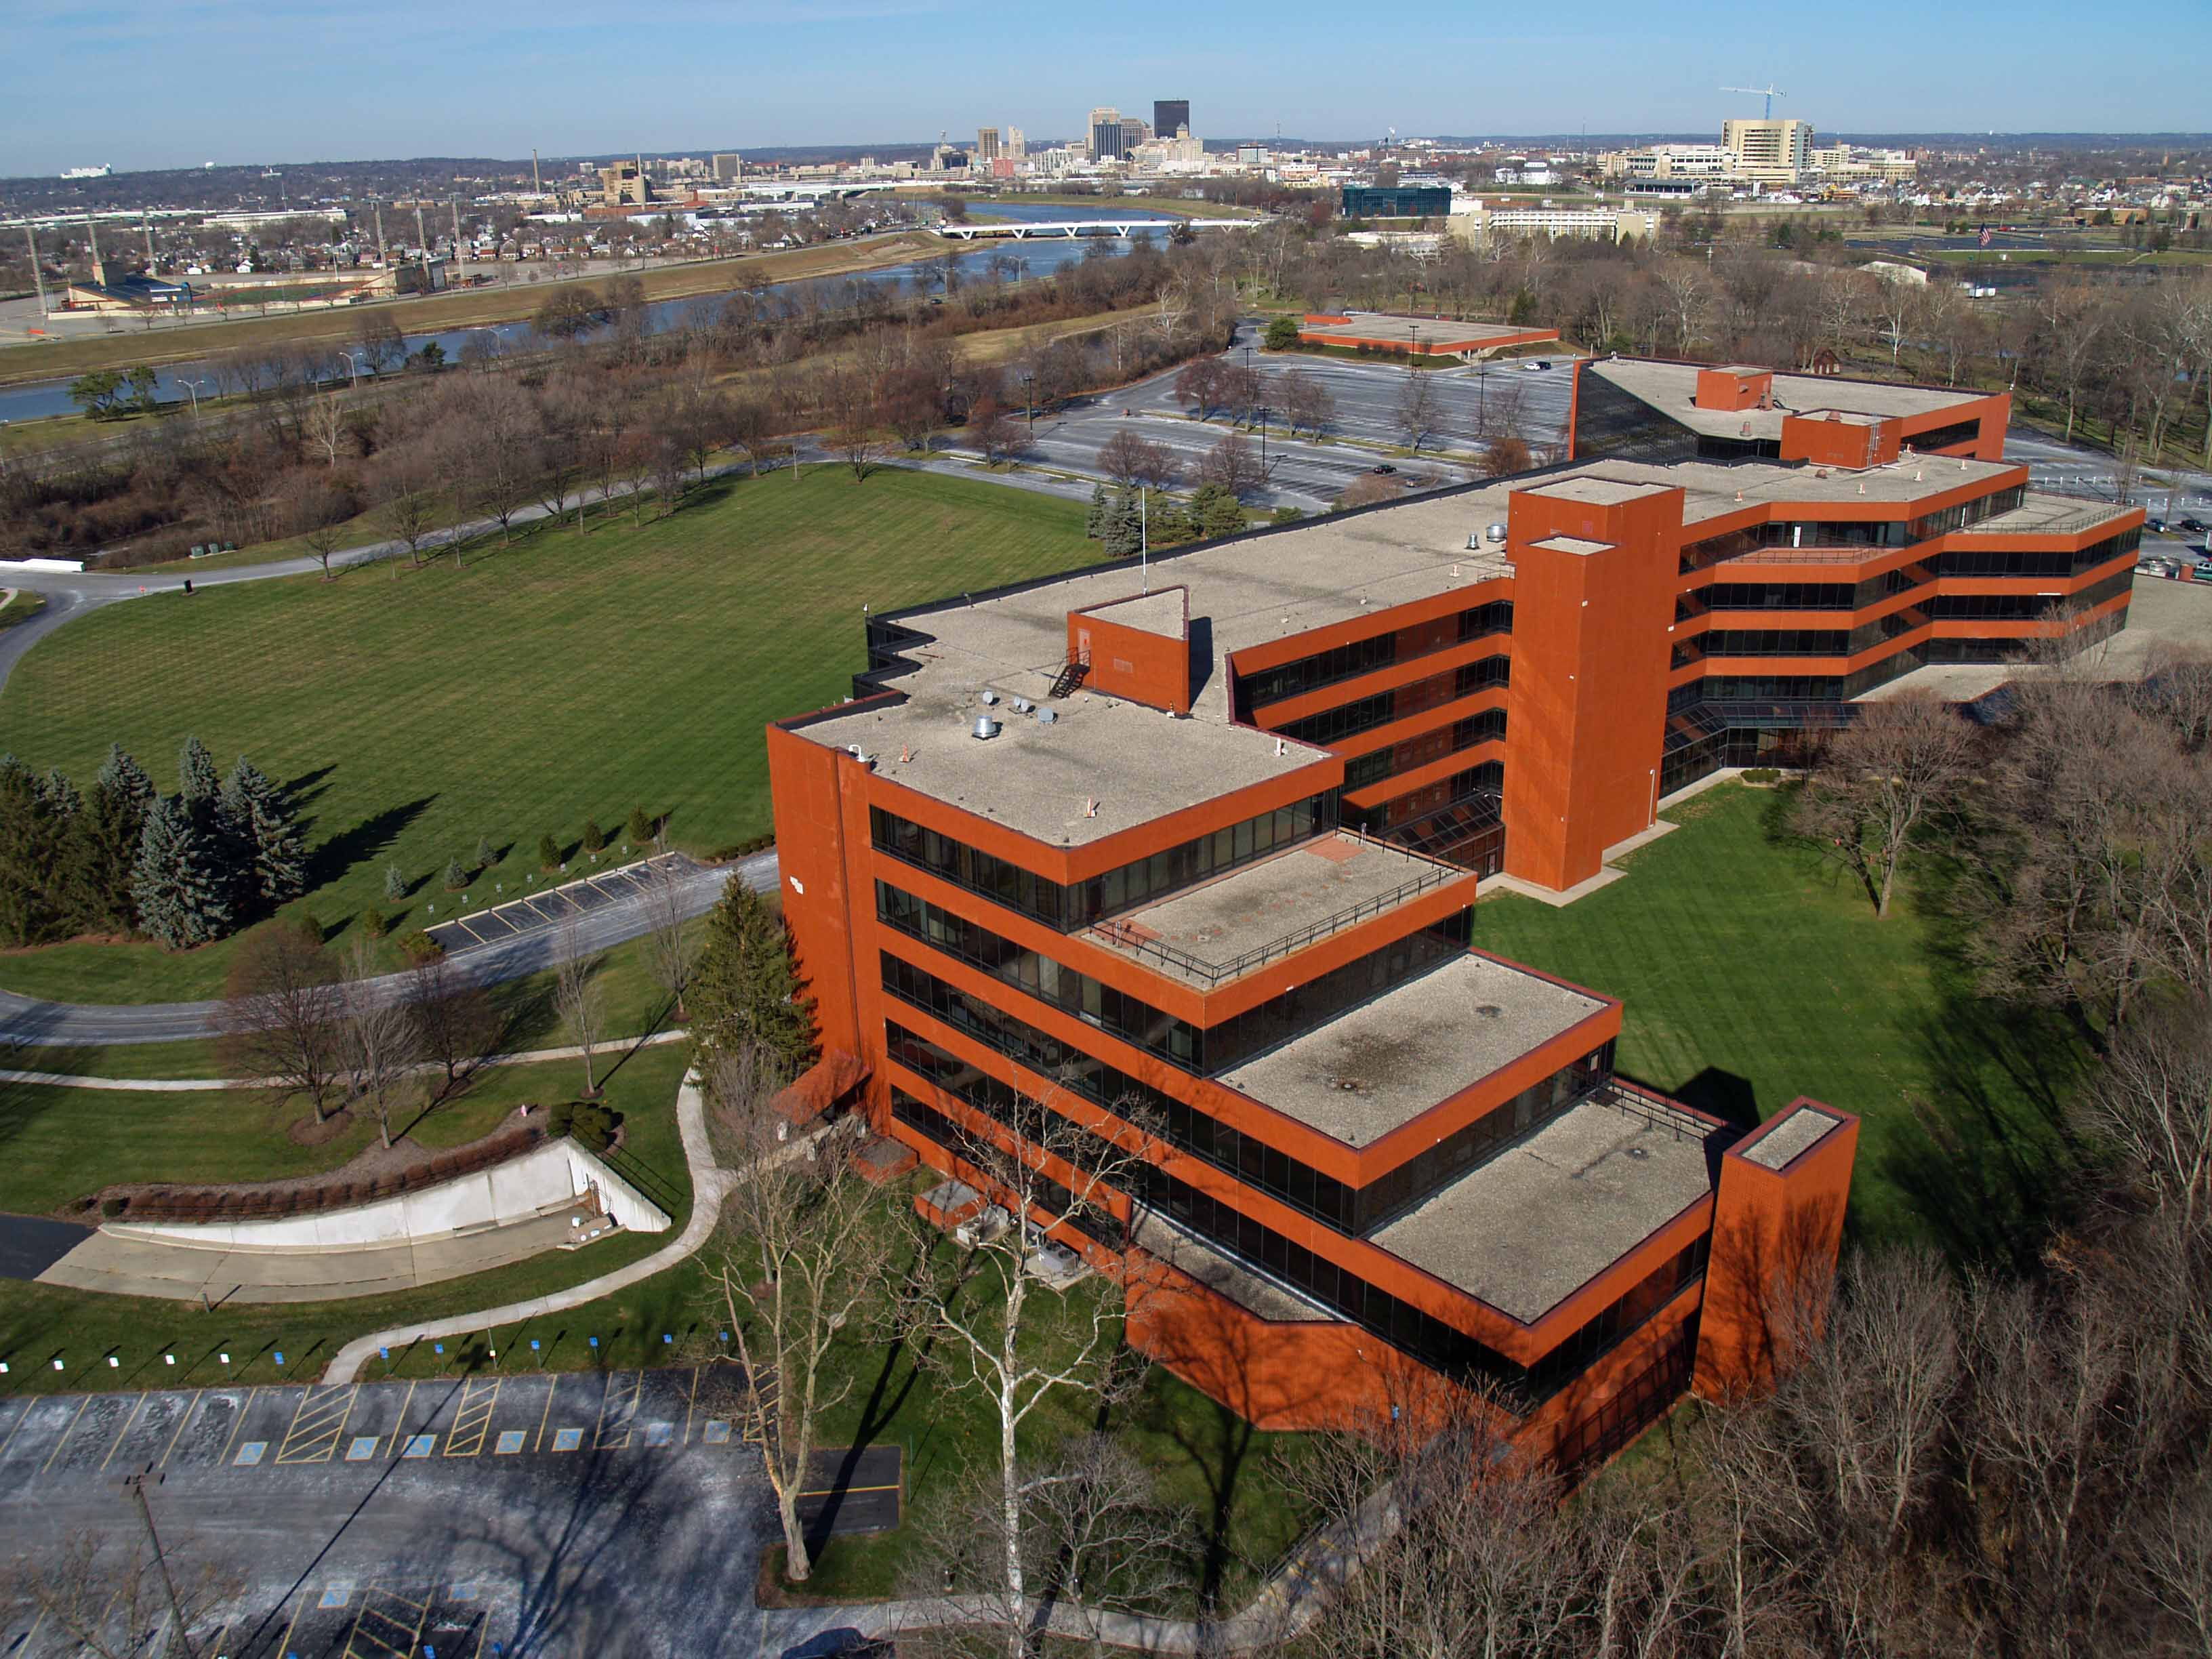 Dayton Ohio Drone Aerial Photo University of Dayton Research Institute